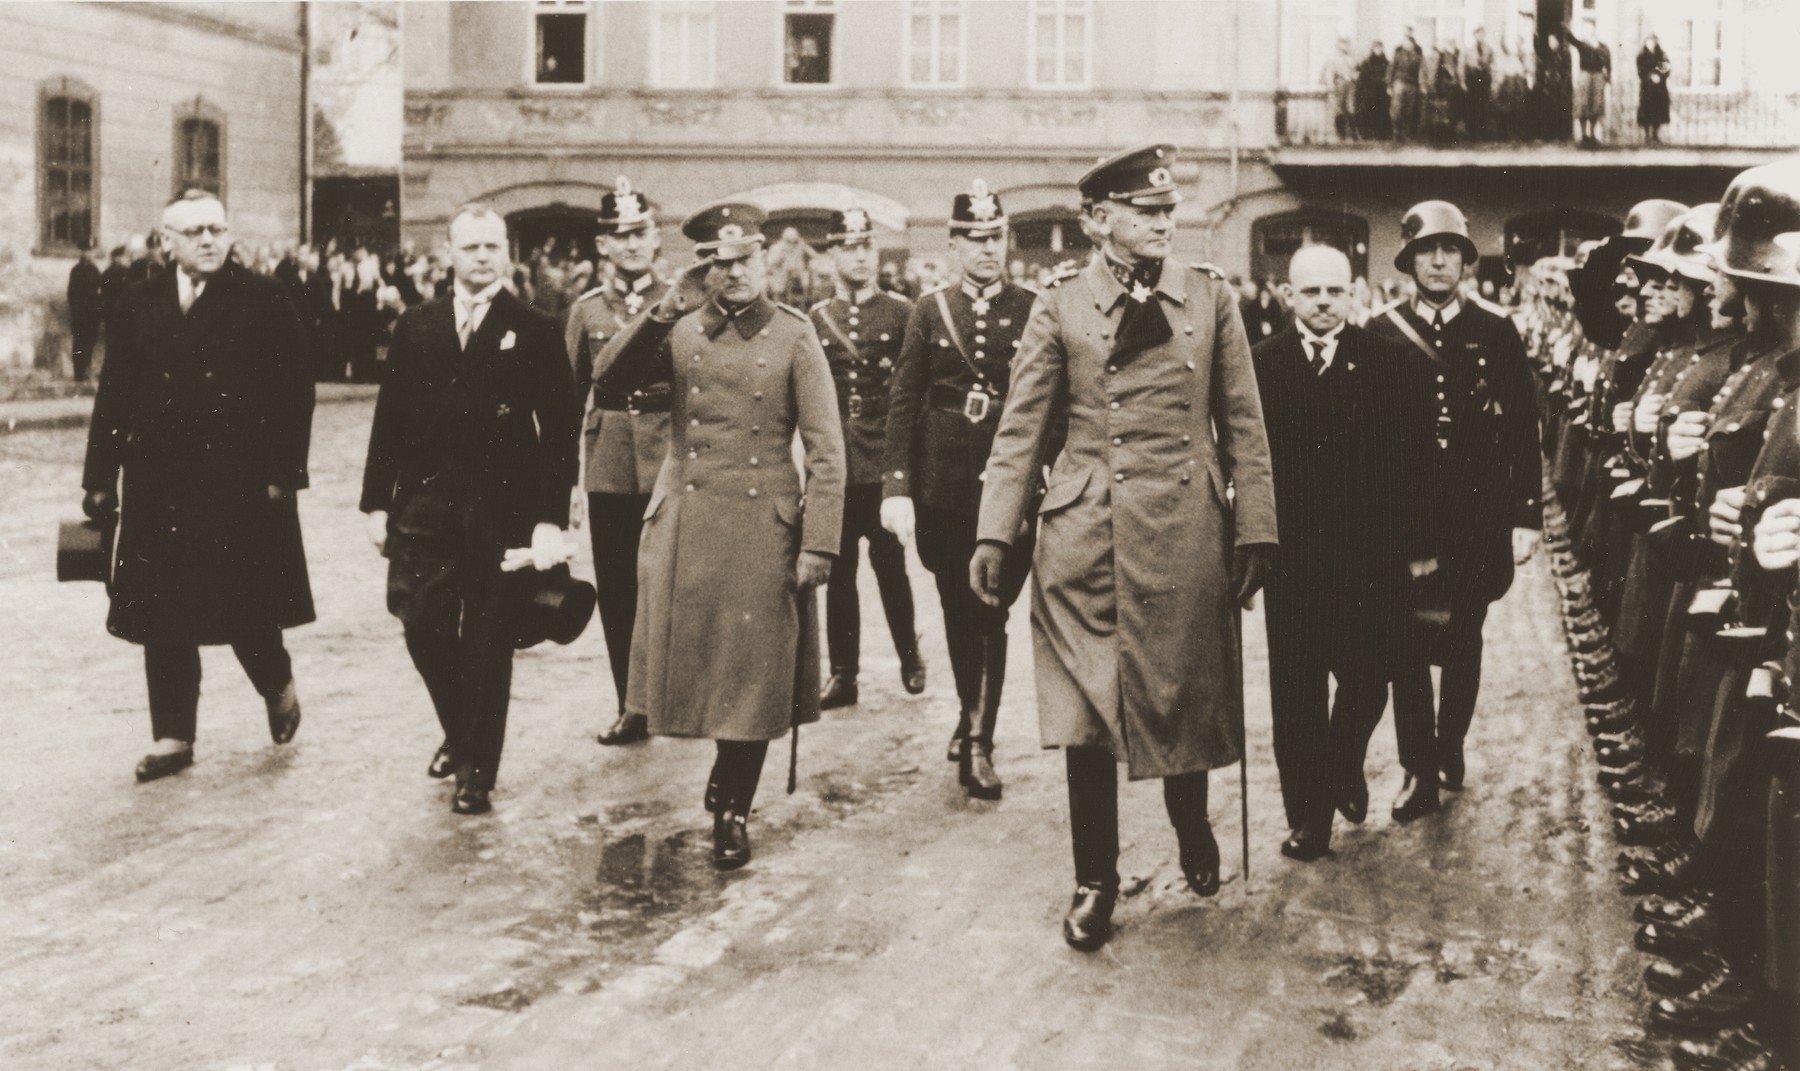 Reichswehrminister General Werner von Blomberg reviews troops during a parade in Weimar in celebration of the electoral victory of March 5, 1933.  Pictured behind von Blomberg on the left is Gauleiter Fritz Saukel.